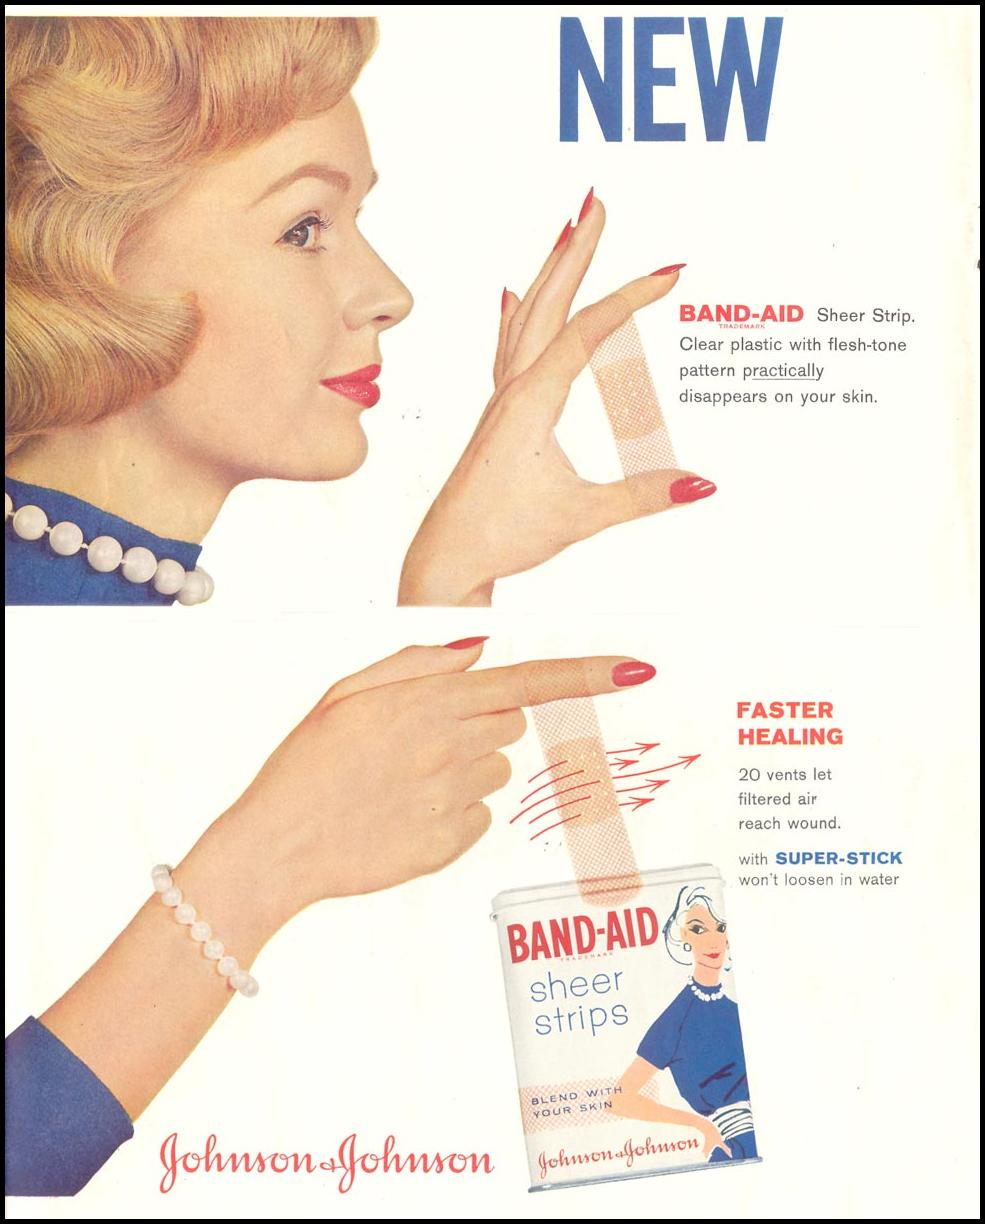 BAND-AID SHEER STRIPS SATURDAY EVENING POST 08/15/1959 p. 62